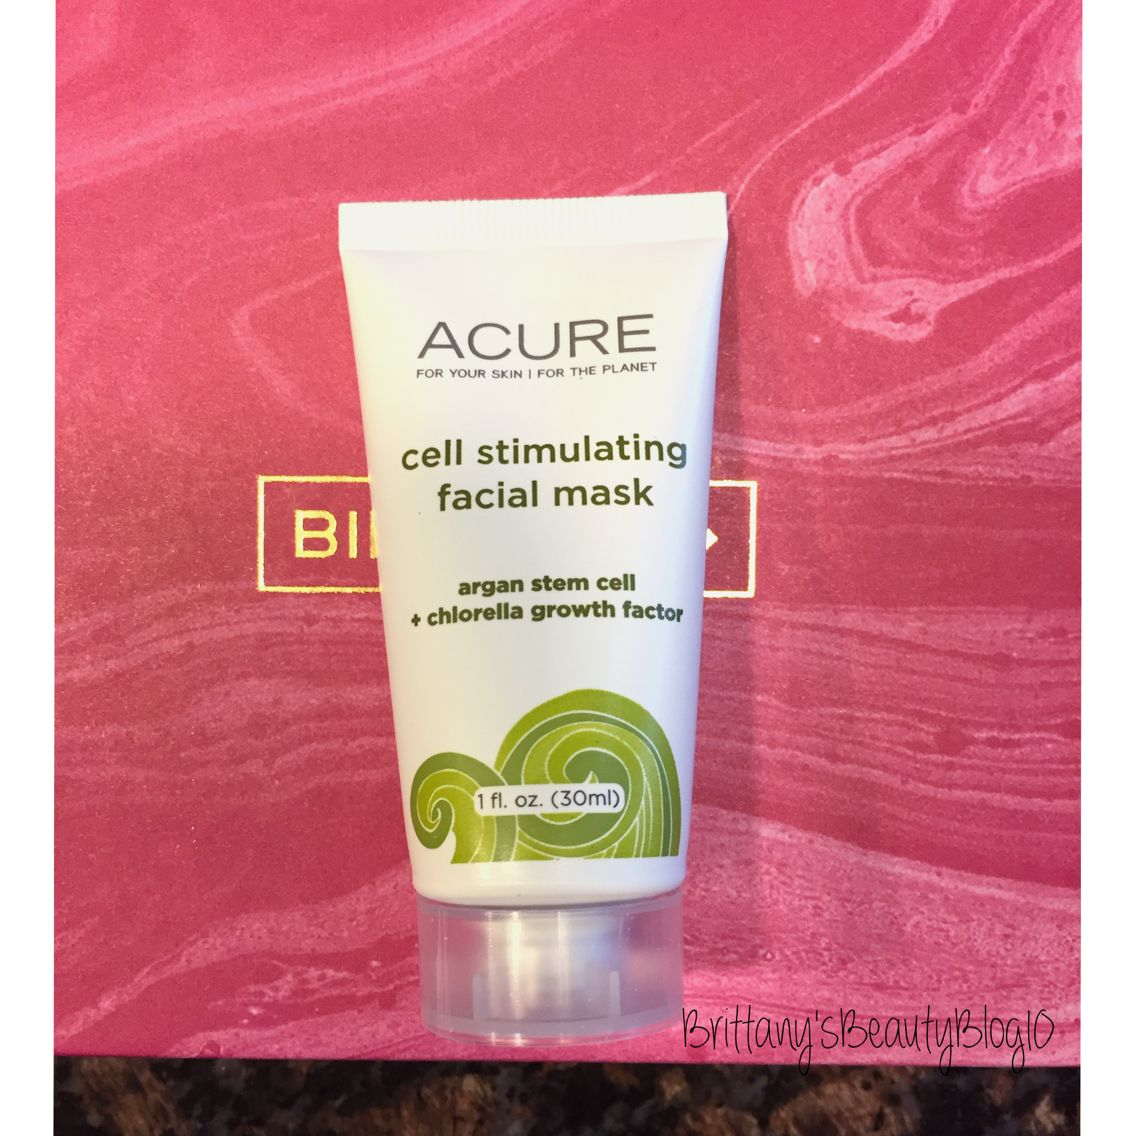 Acure Cell Stimulating Facial Mask (travel Size 1 Fl Oz